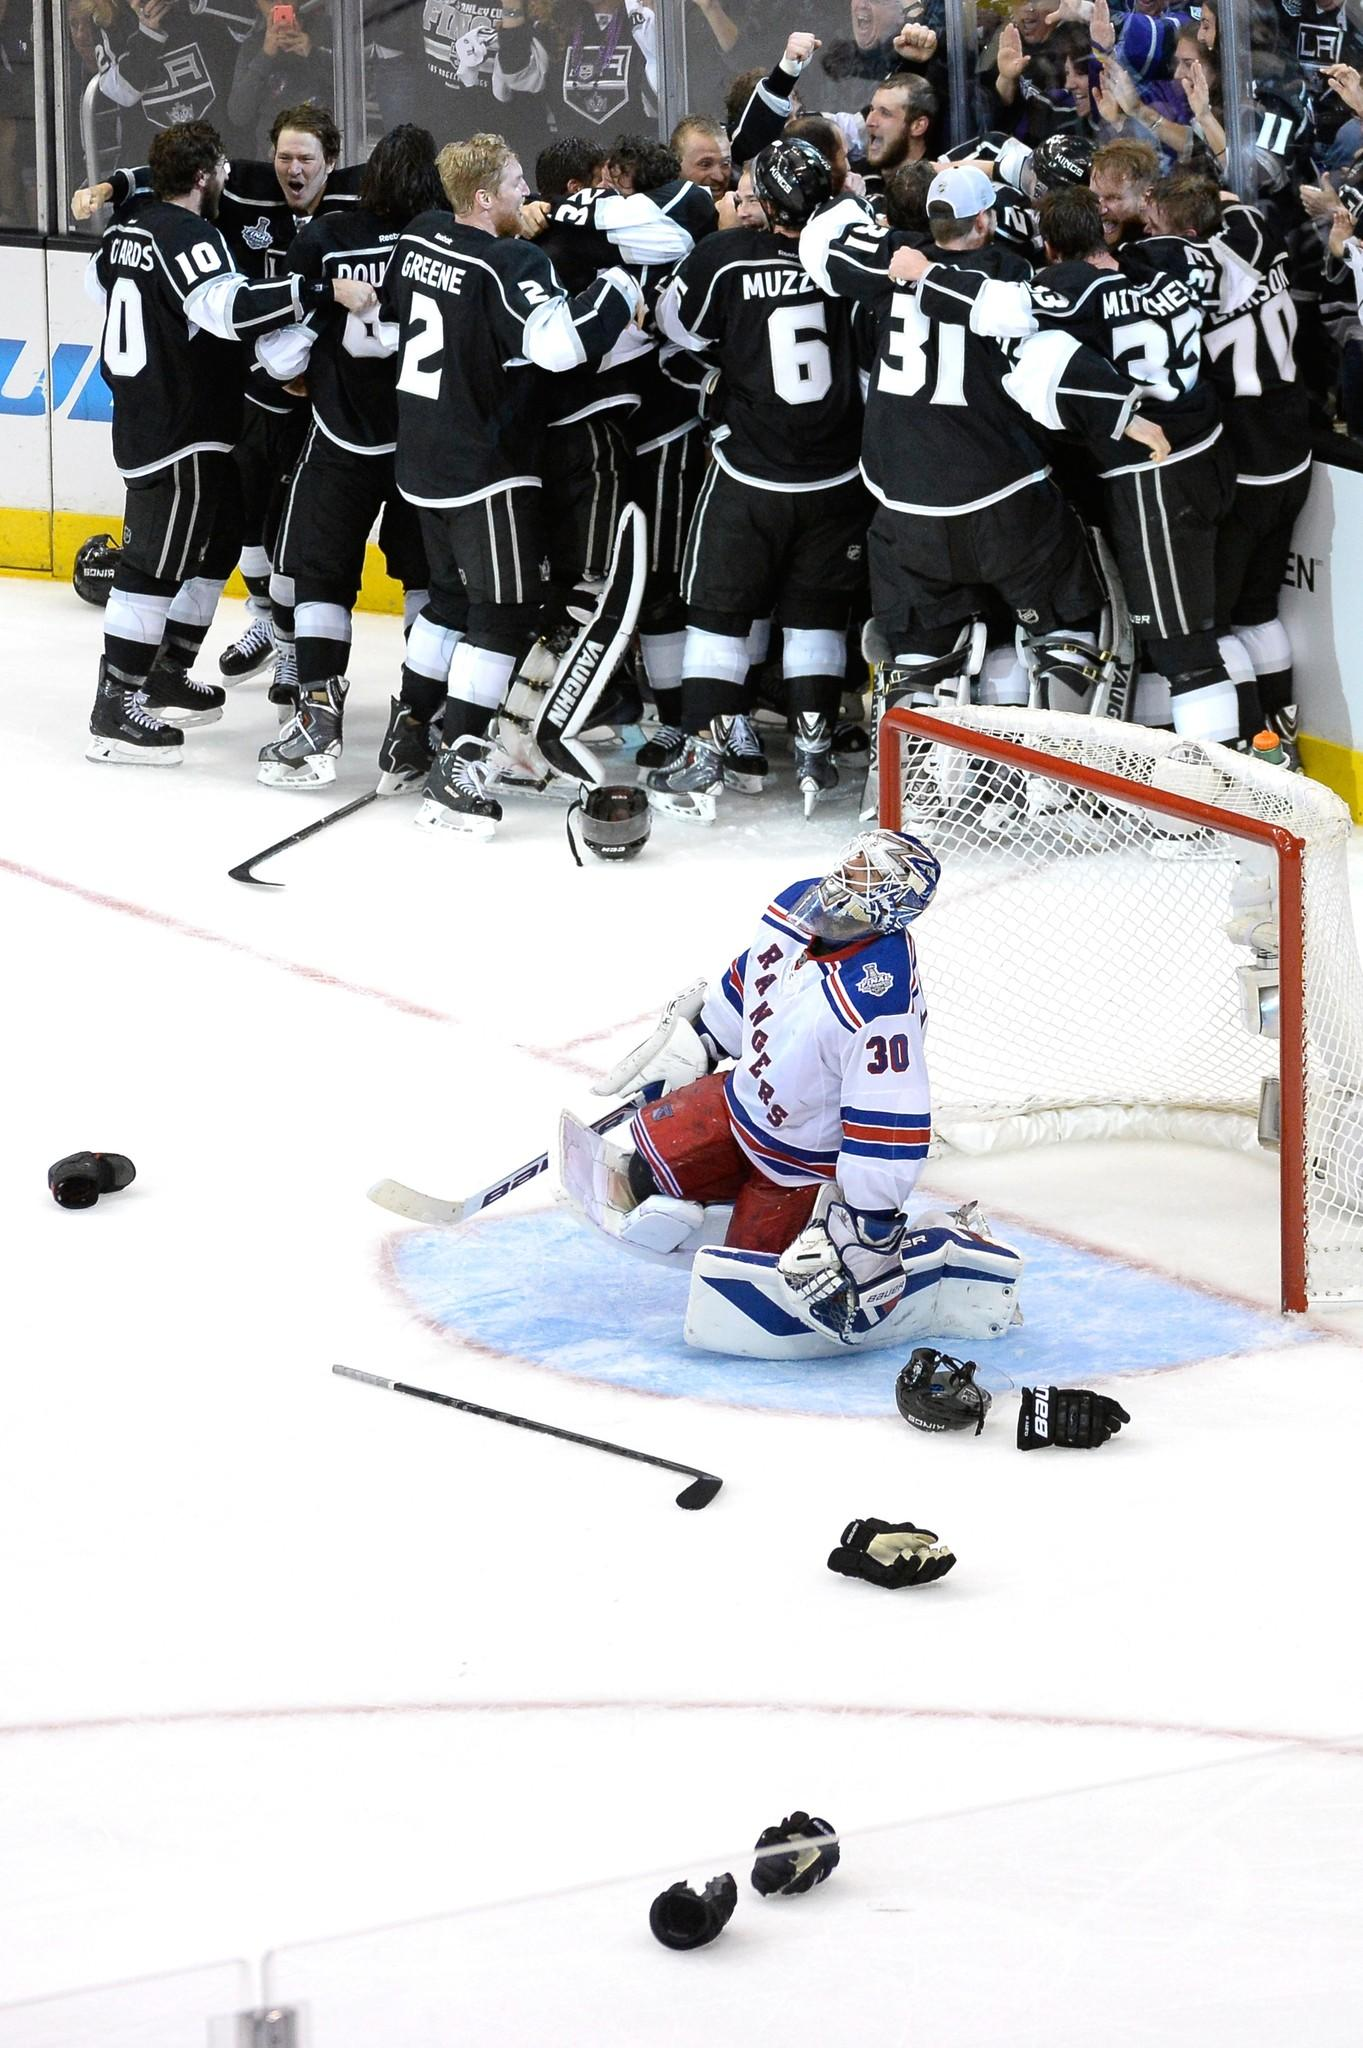 Alec Martinez and the Kings celebrate after scoring the game-winning goal in double overtime.